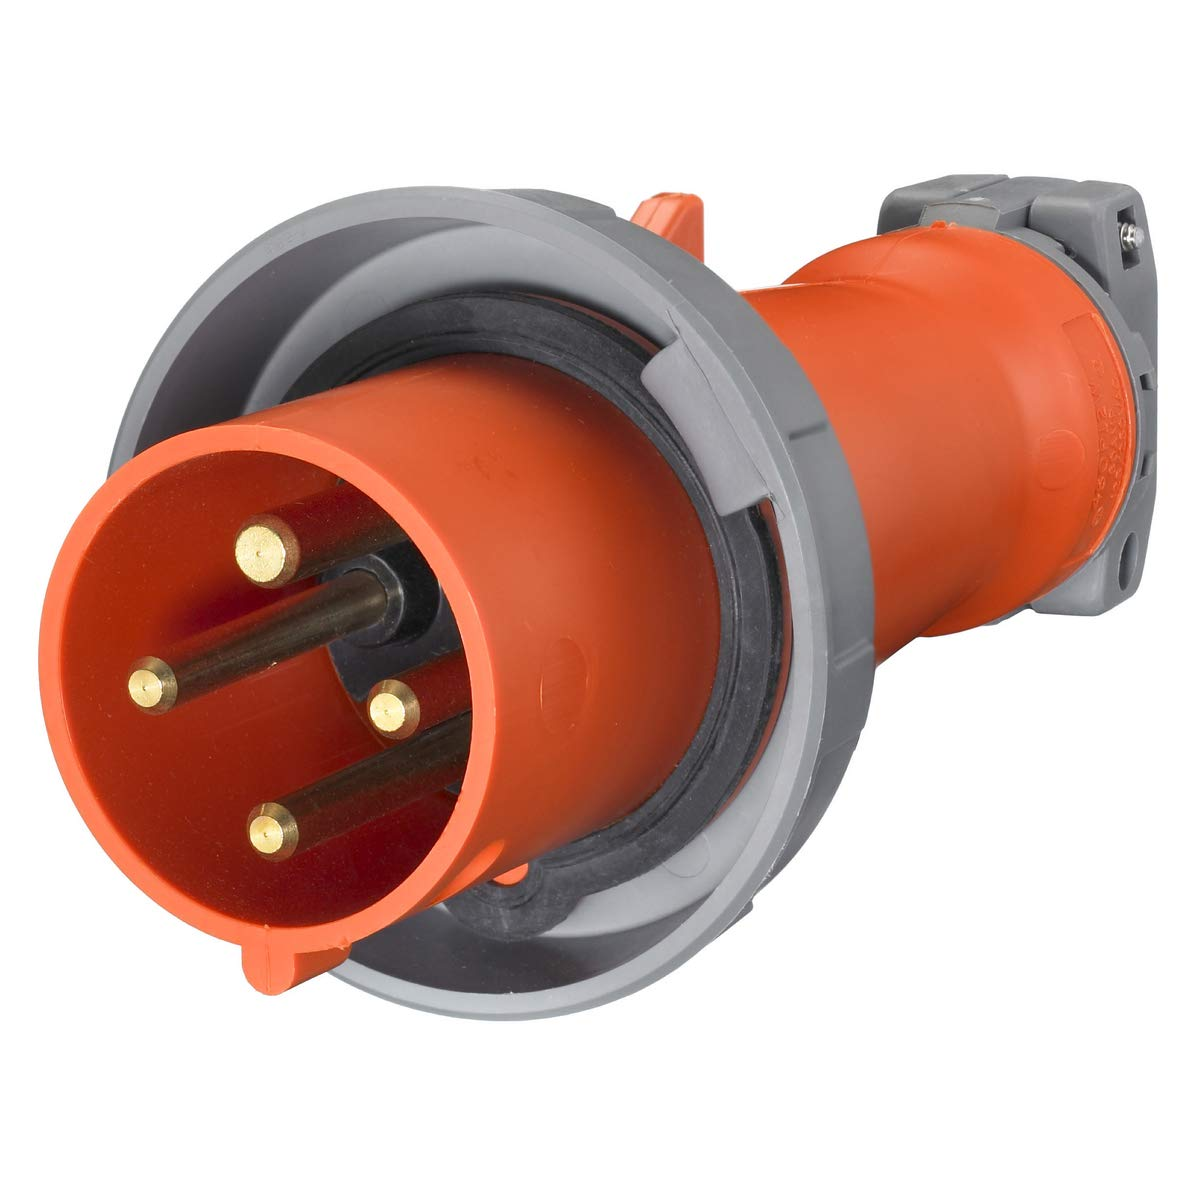 Hubbell HBL460P12W Pin and Sleeve IEC Plug, 3 Pole, 4 Wire ... on atex plug wiring, terminal block wiring, dot plug wiring, nema plug wiring, semi plug wiring, icc plug wiring, samsung plug wiring, usa plug wiring,